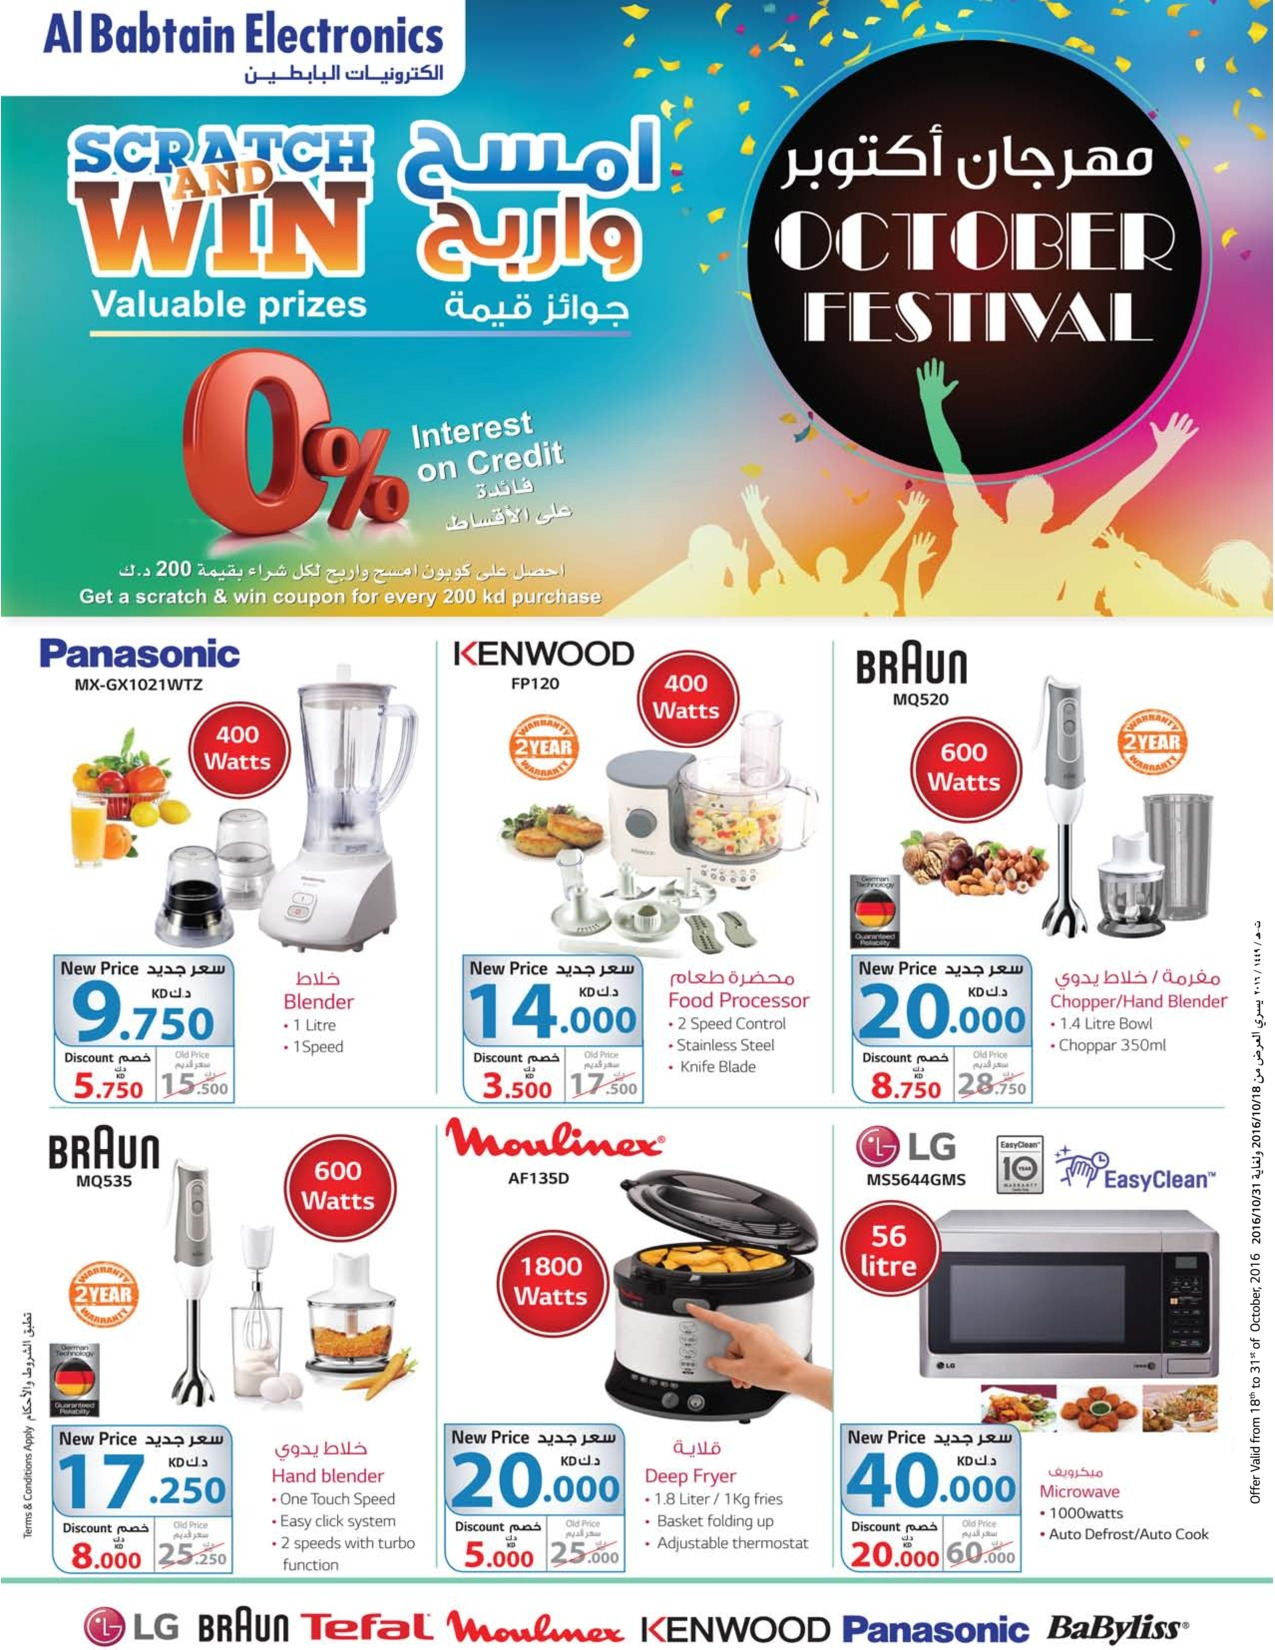 scratch-and-win-valuable-prizes-kuwait